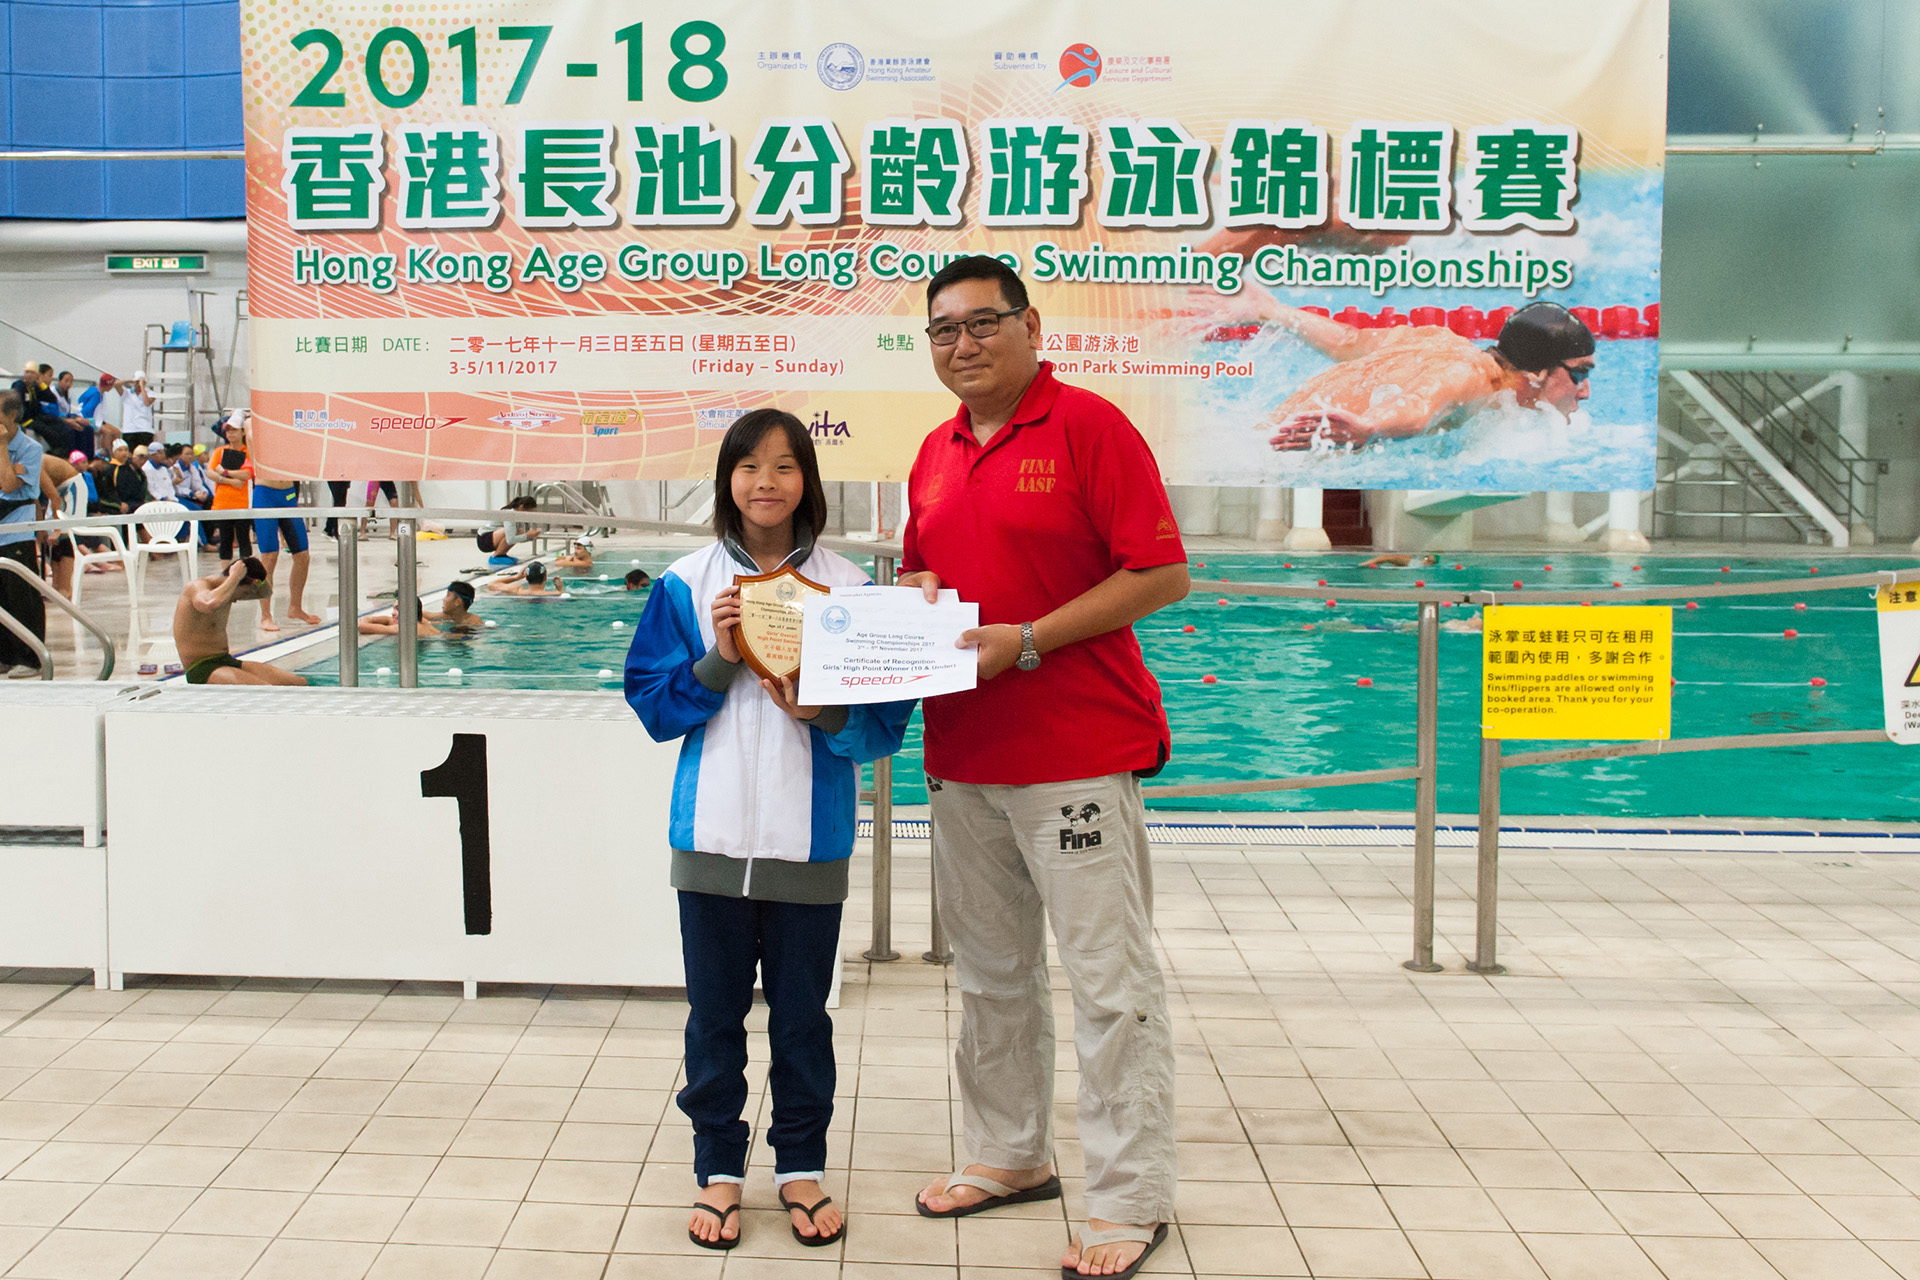 Win Tin Swimming Club - 2017 Long Course Age Group Championships 1